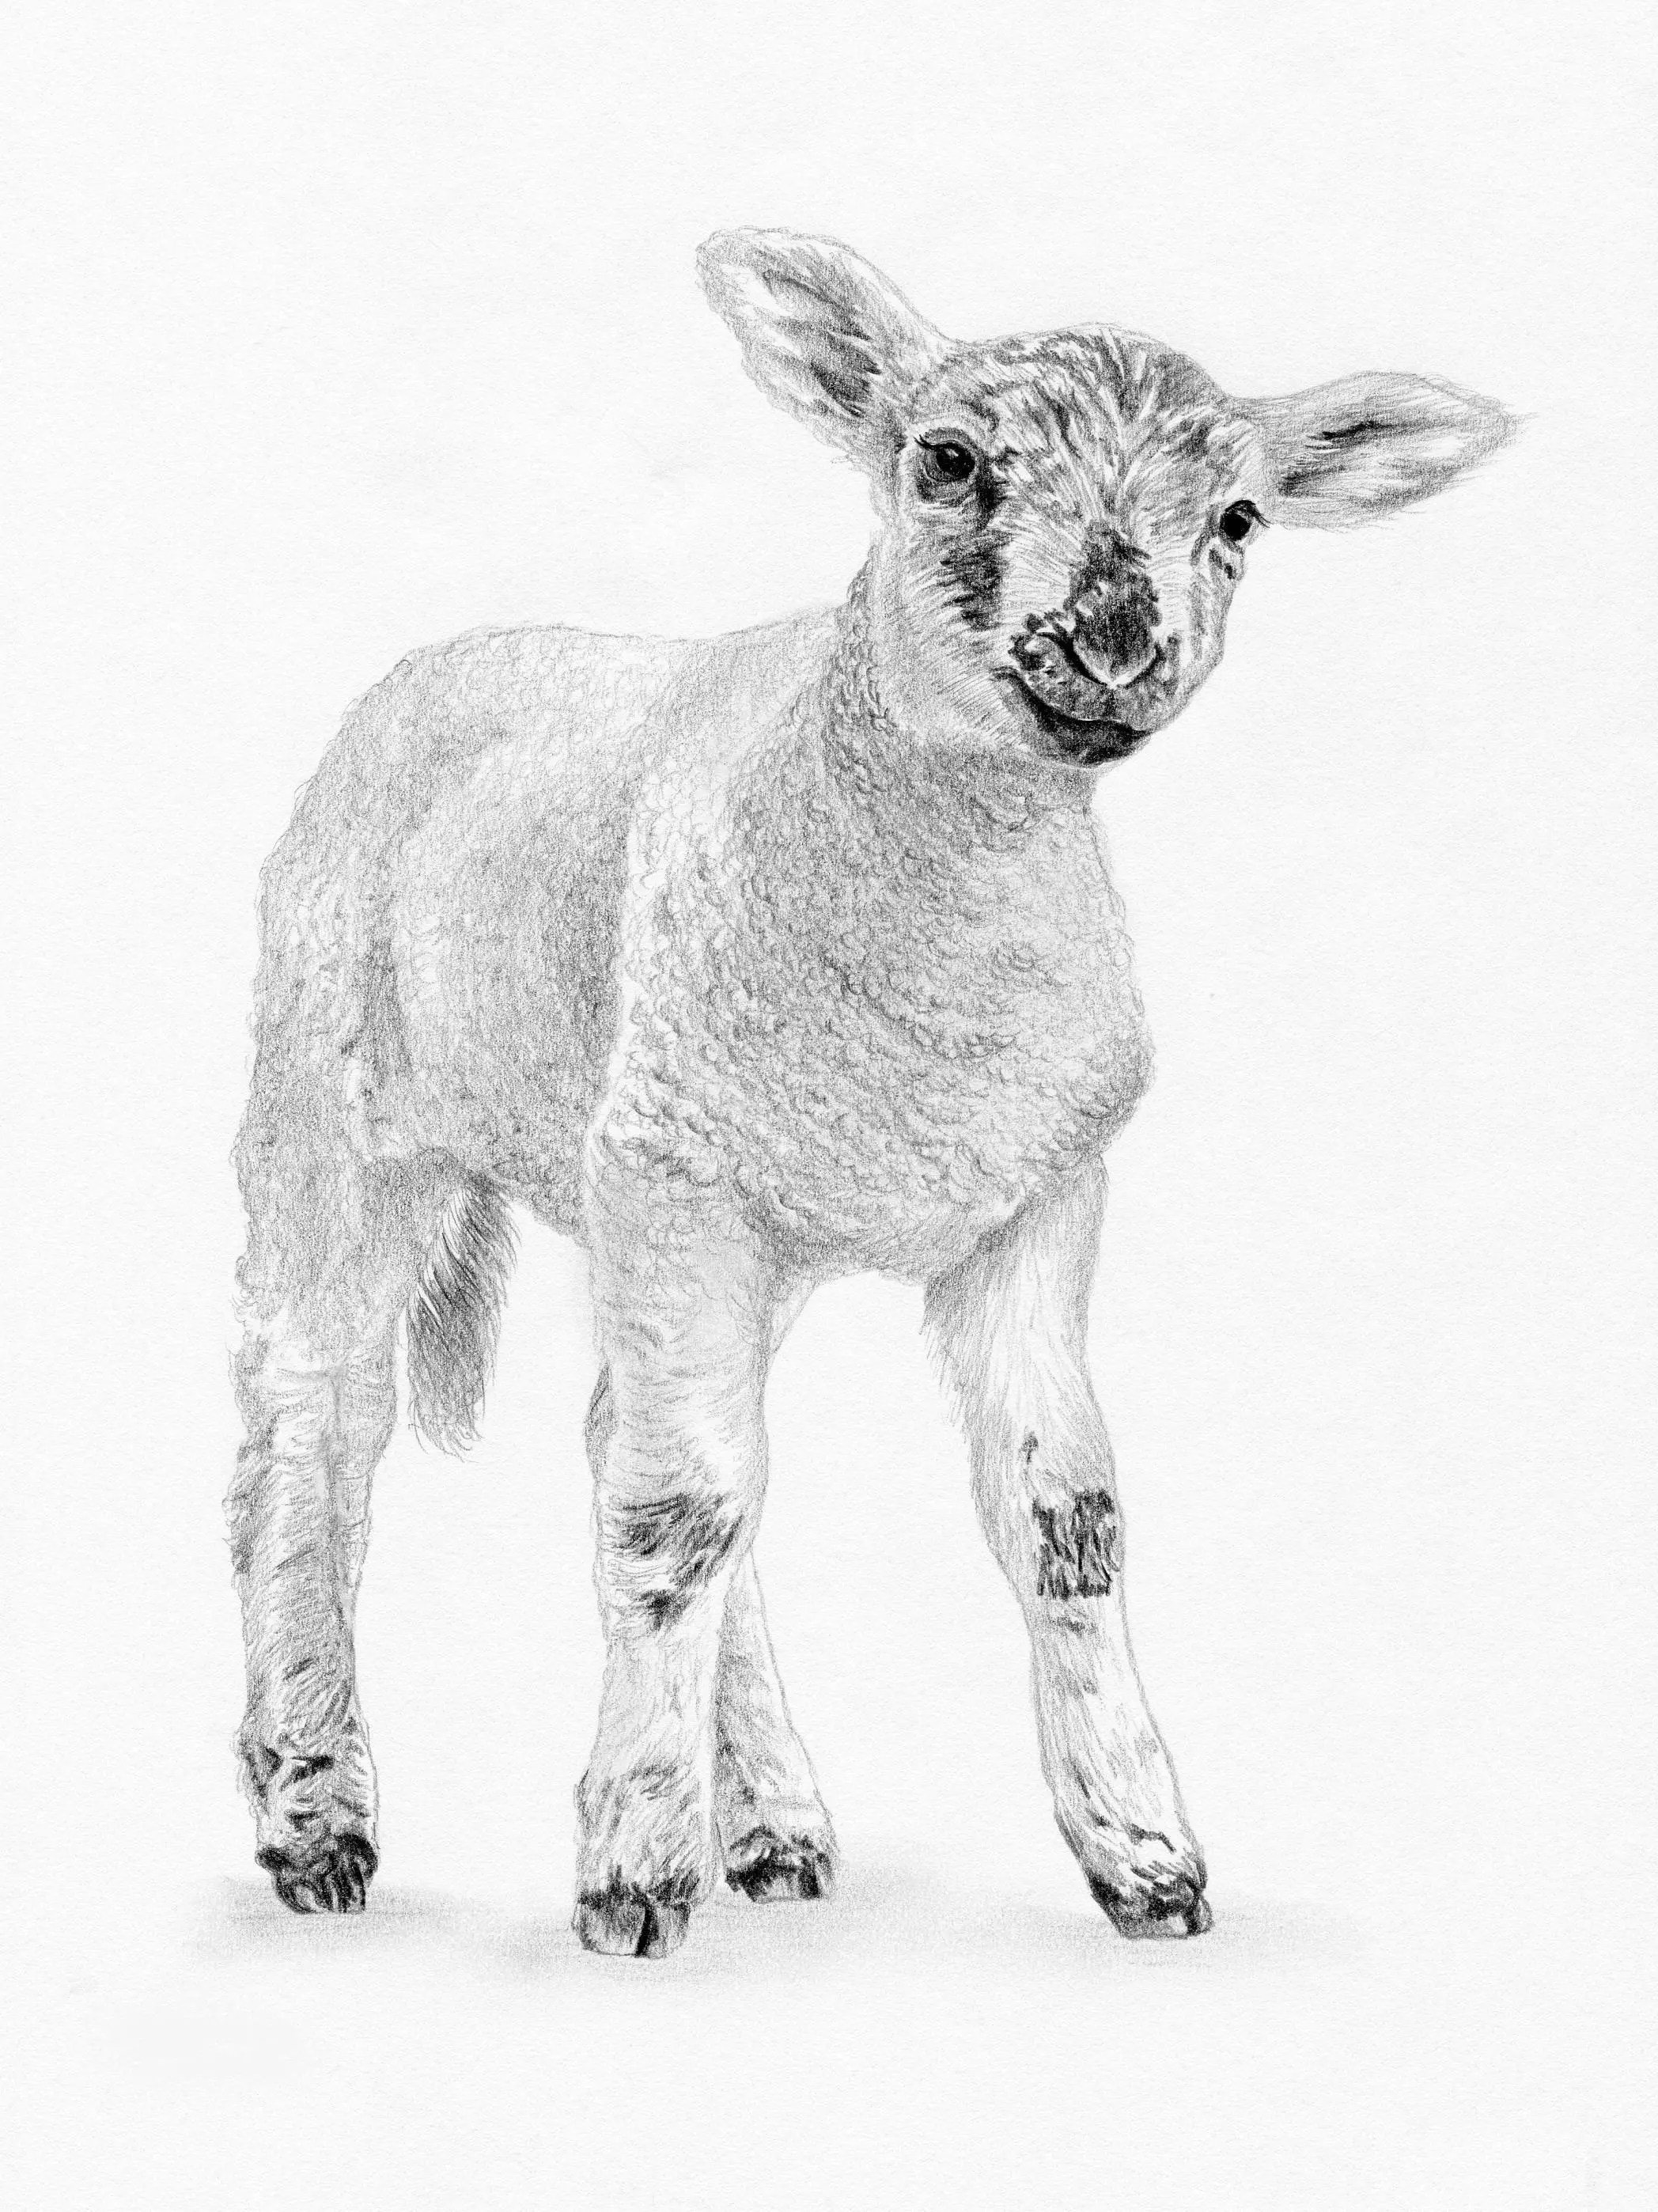 Baby Lamb Drawing Lamb Sheep Baby Art Pencil Drawing Print Signed By Uk Artist